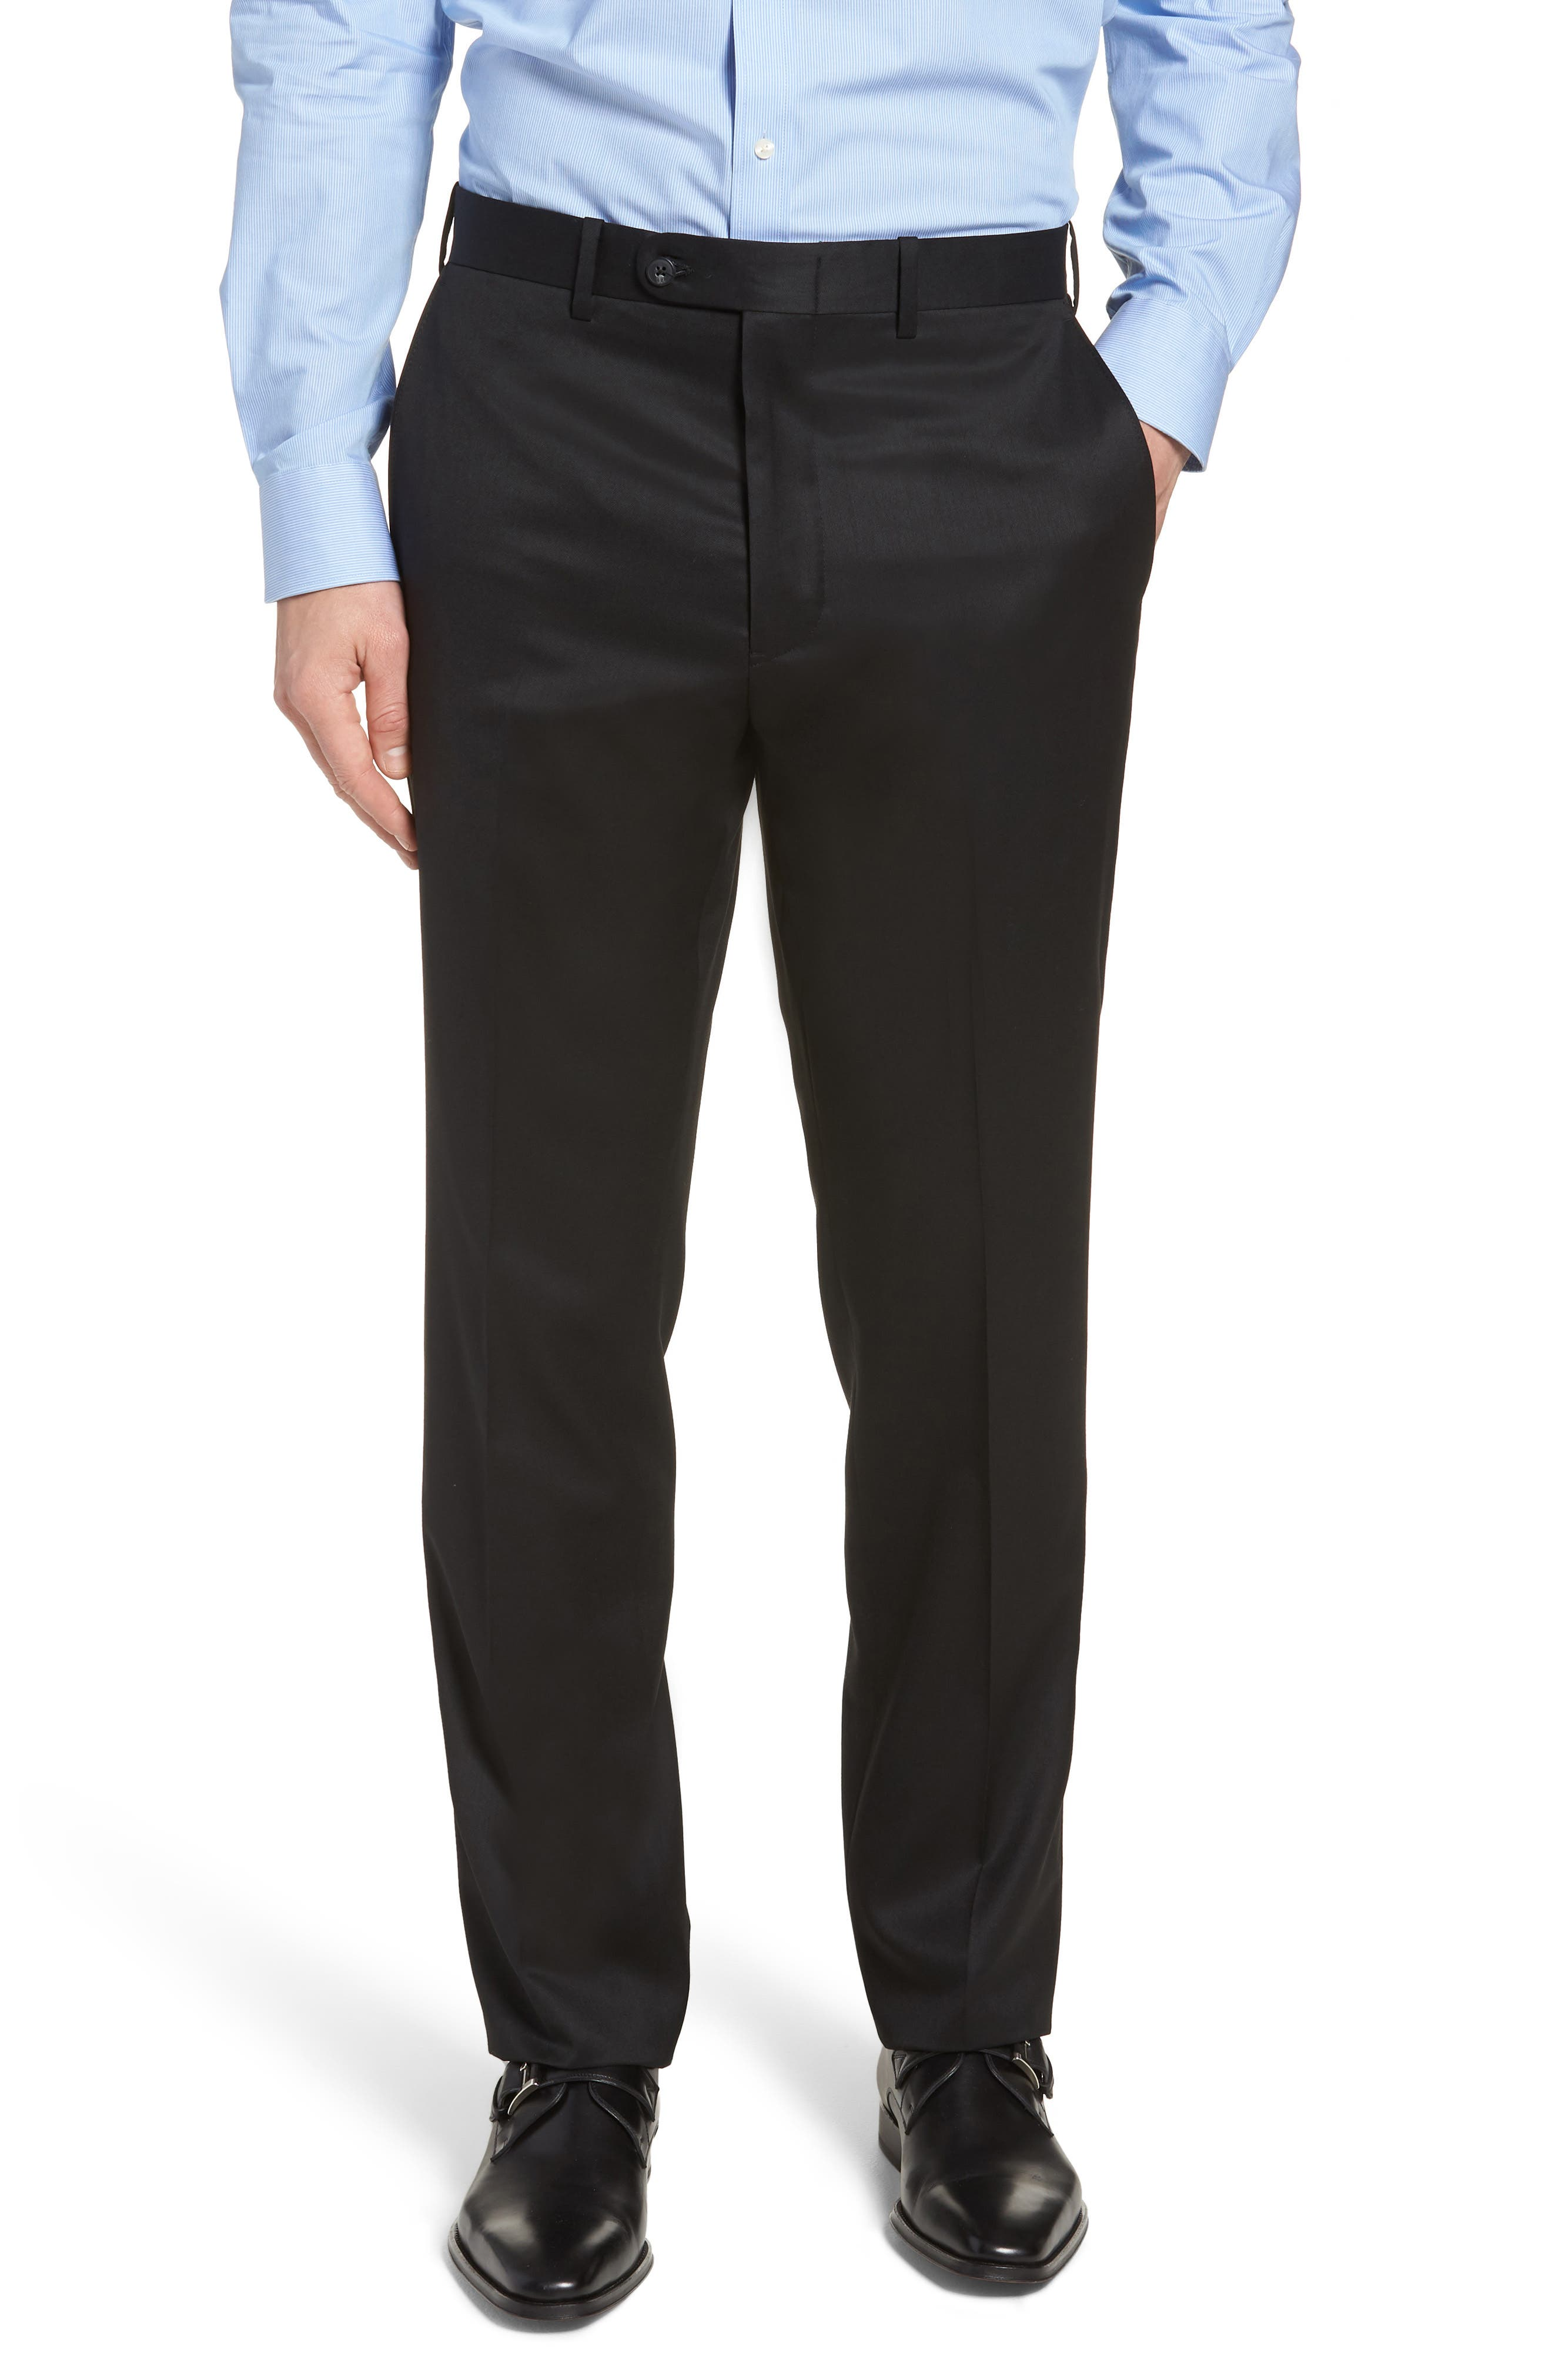 JOHN W. NORDSTROM<SUP>®</SUP>, Torino Traditional Fit Flat Front Solid Trousers, Main thumbnail 1, color, BLACK